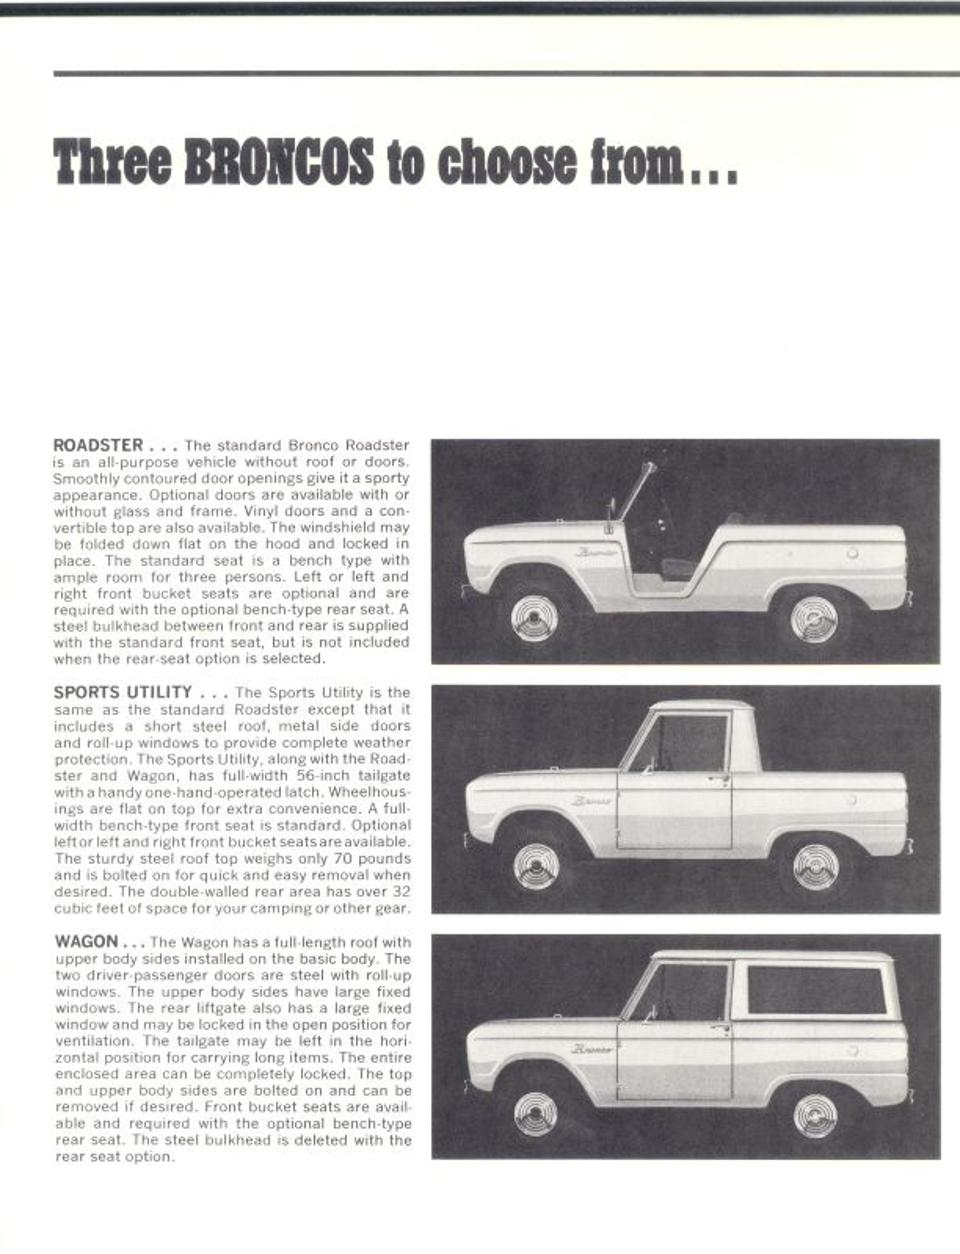 Ad for 1966 Ford Bronco